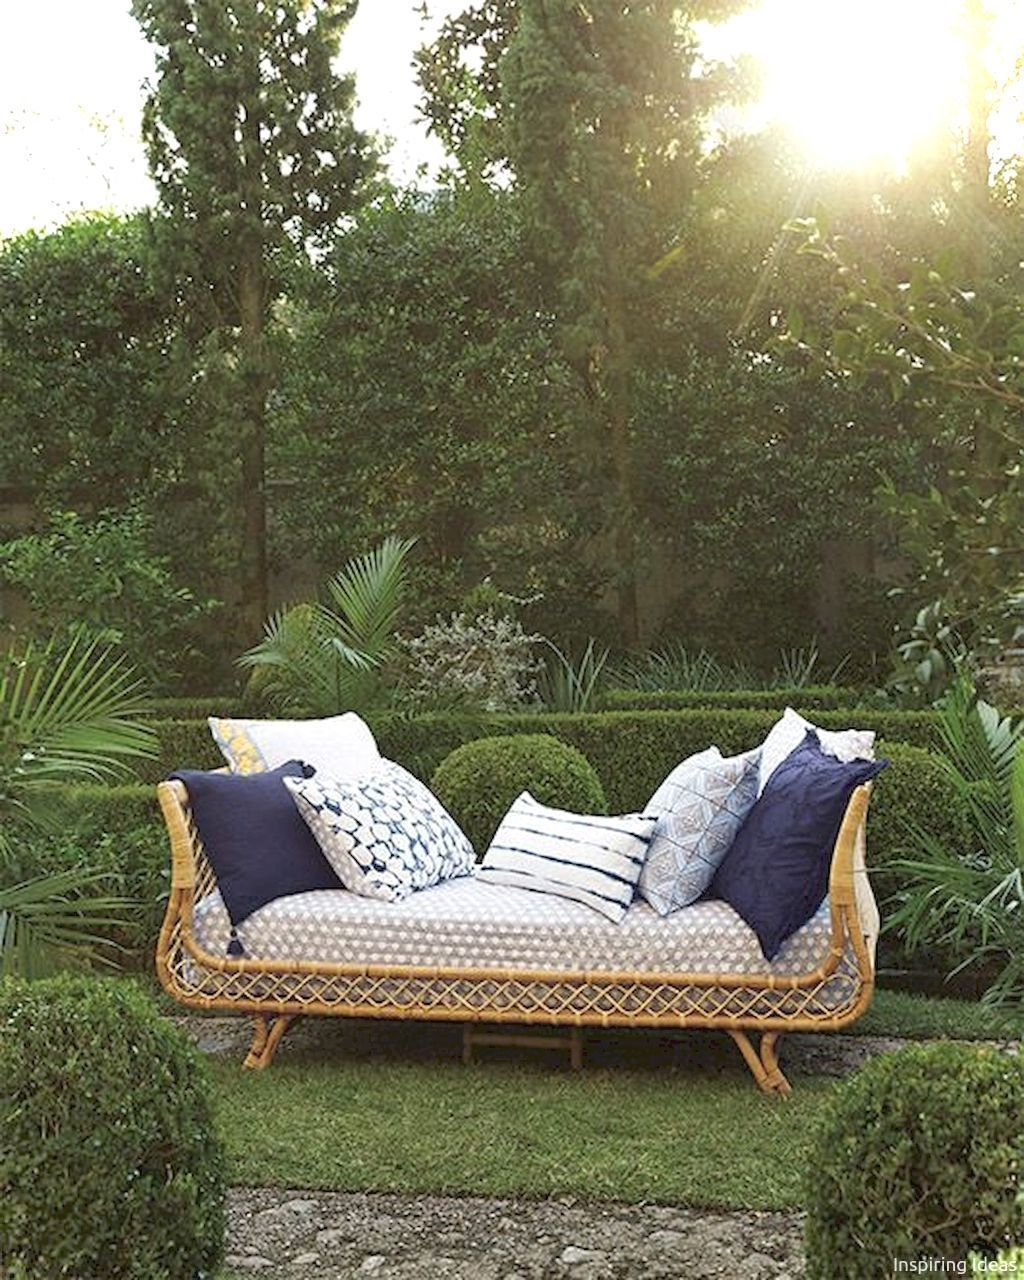 Awesome 40 Insane Vintage Garden Furniture Ideas for Outdoor Living https://decorisart.com/06/40-insane-vintage-garden-furniture-ideas-outdoor-living/ #vintagegardening